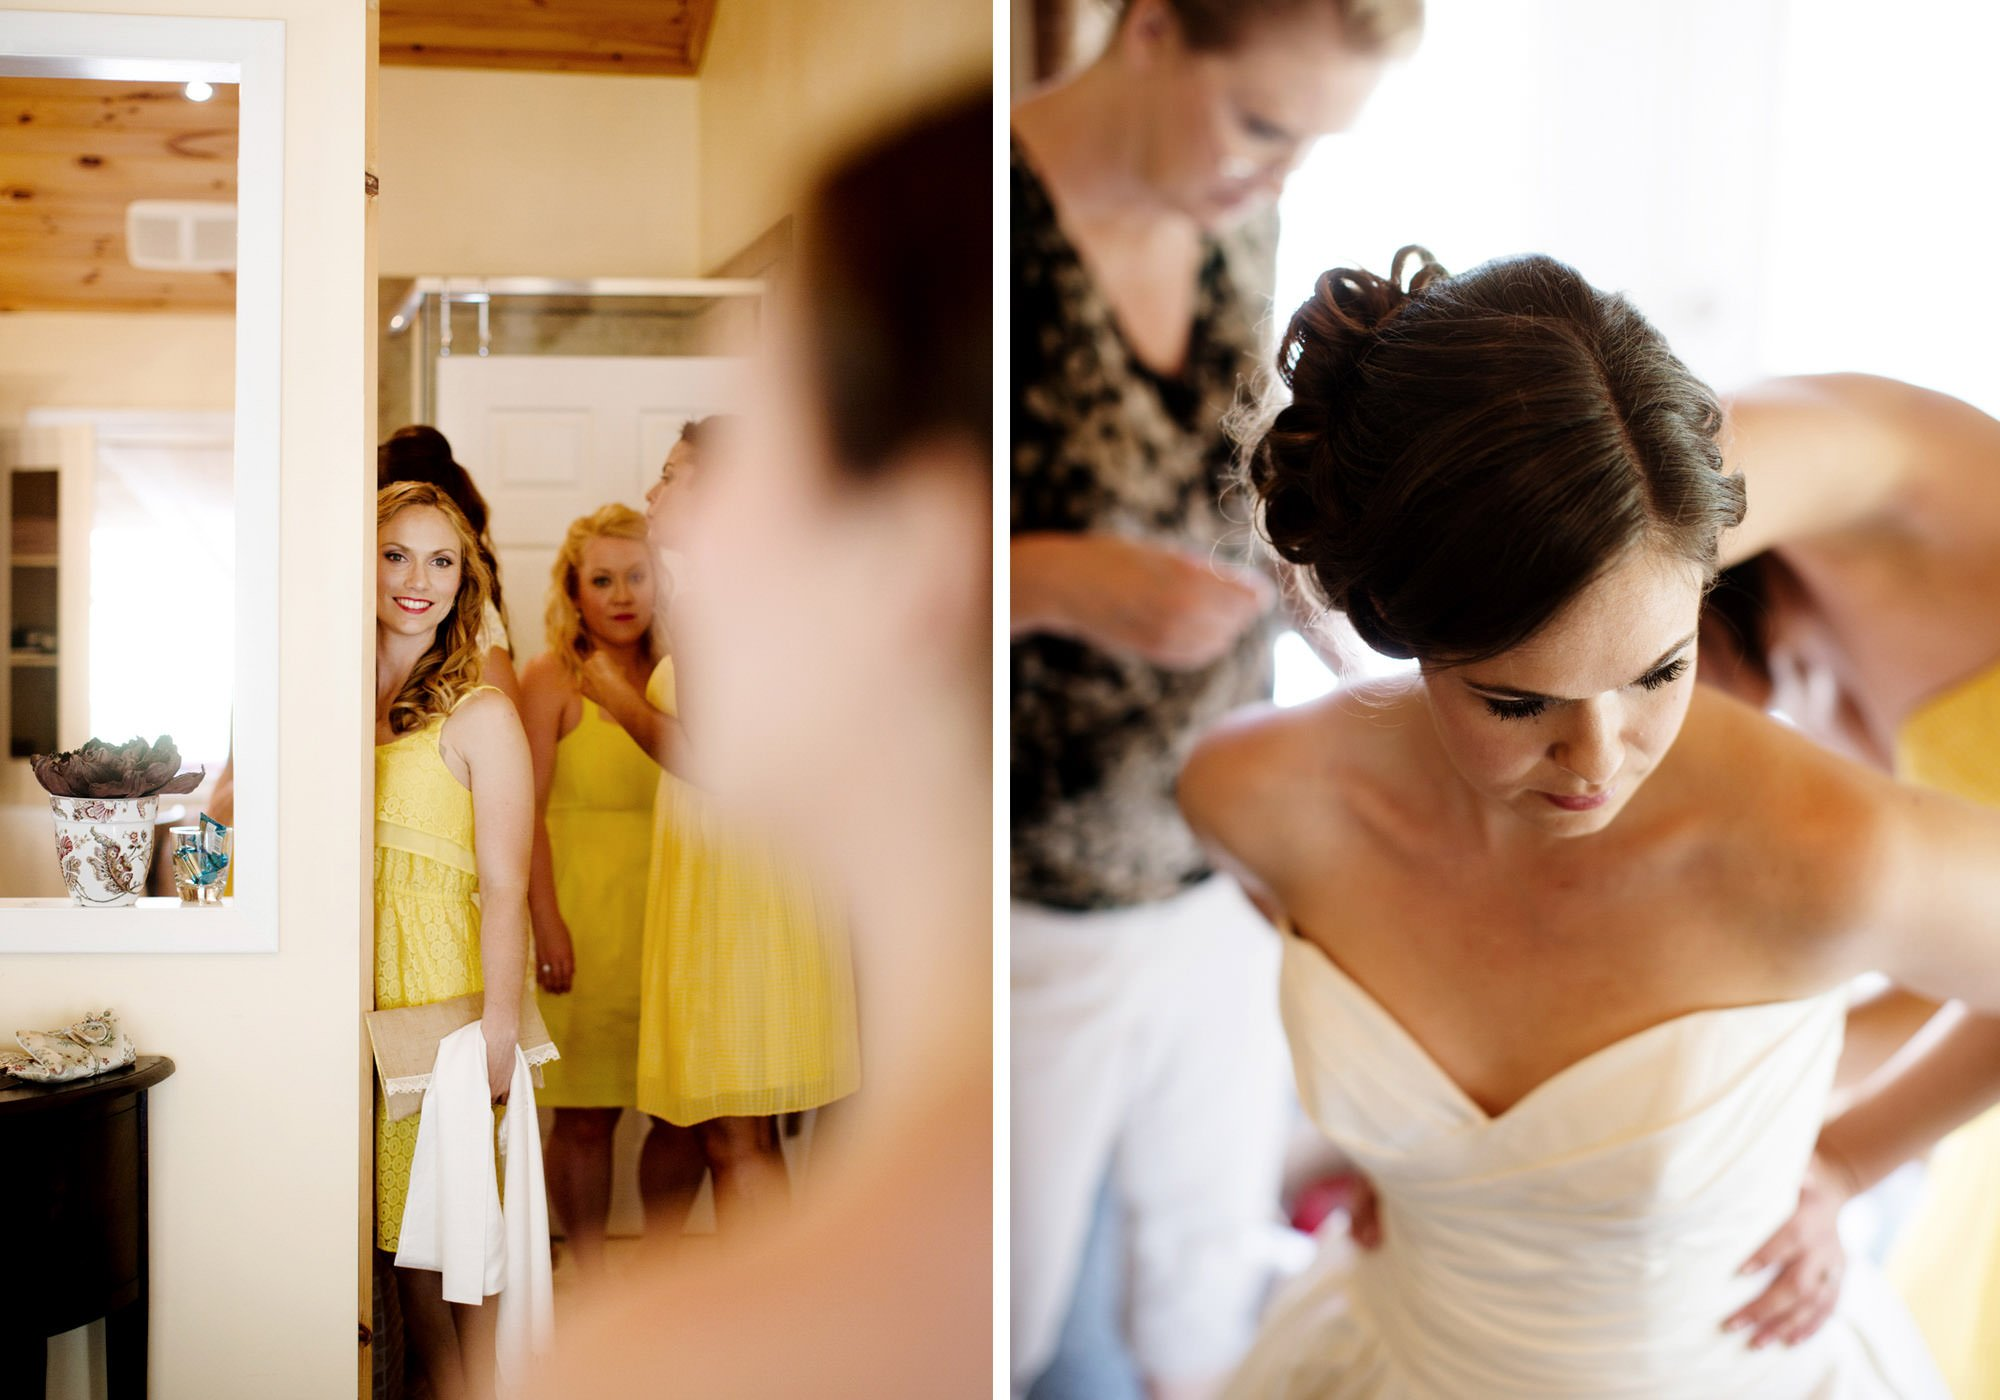 The bride gets ready.